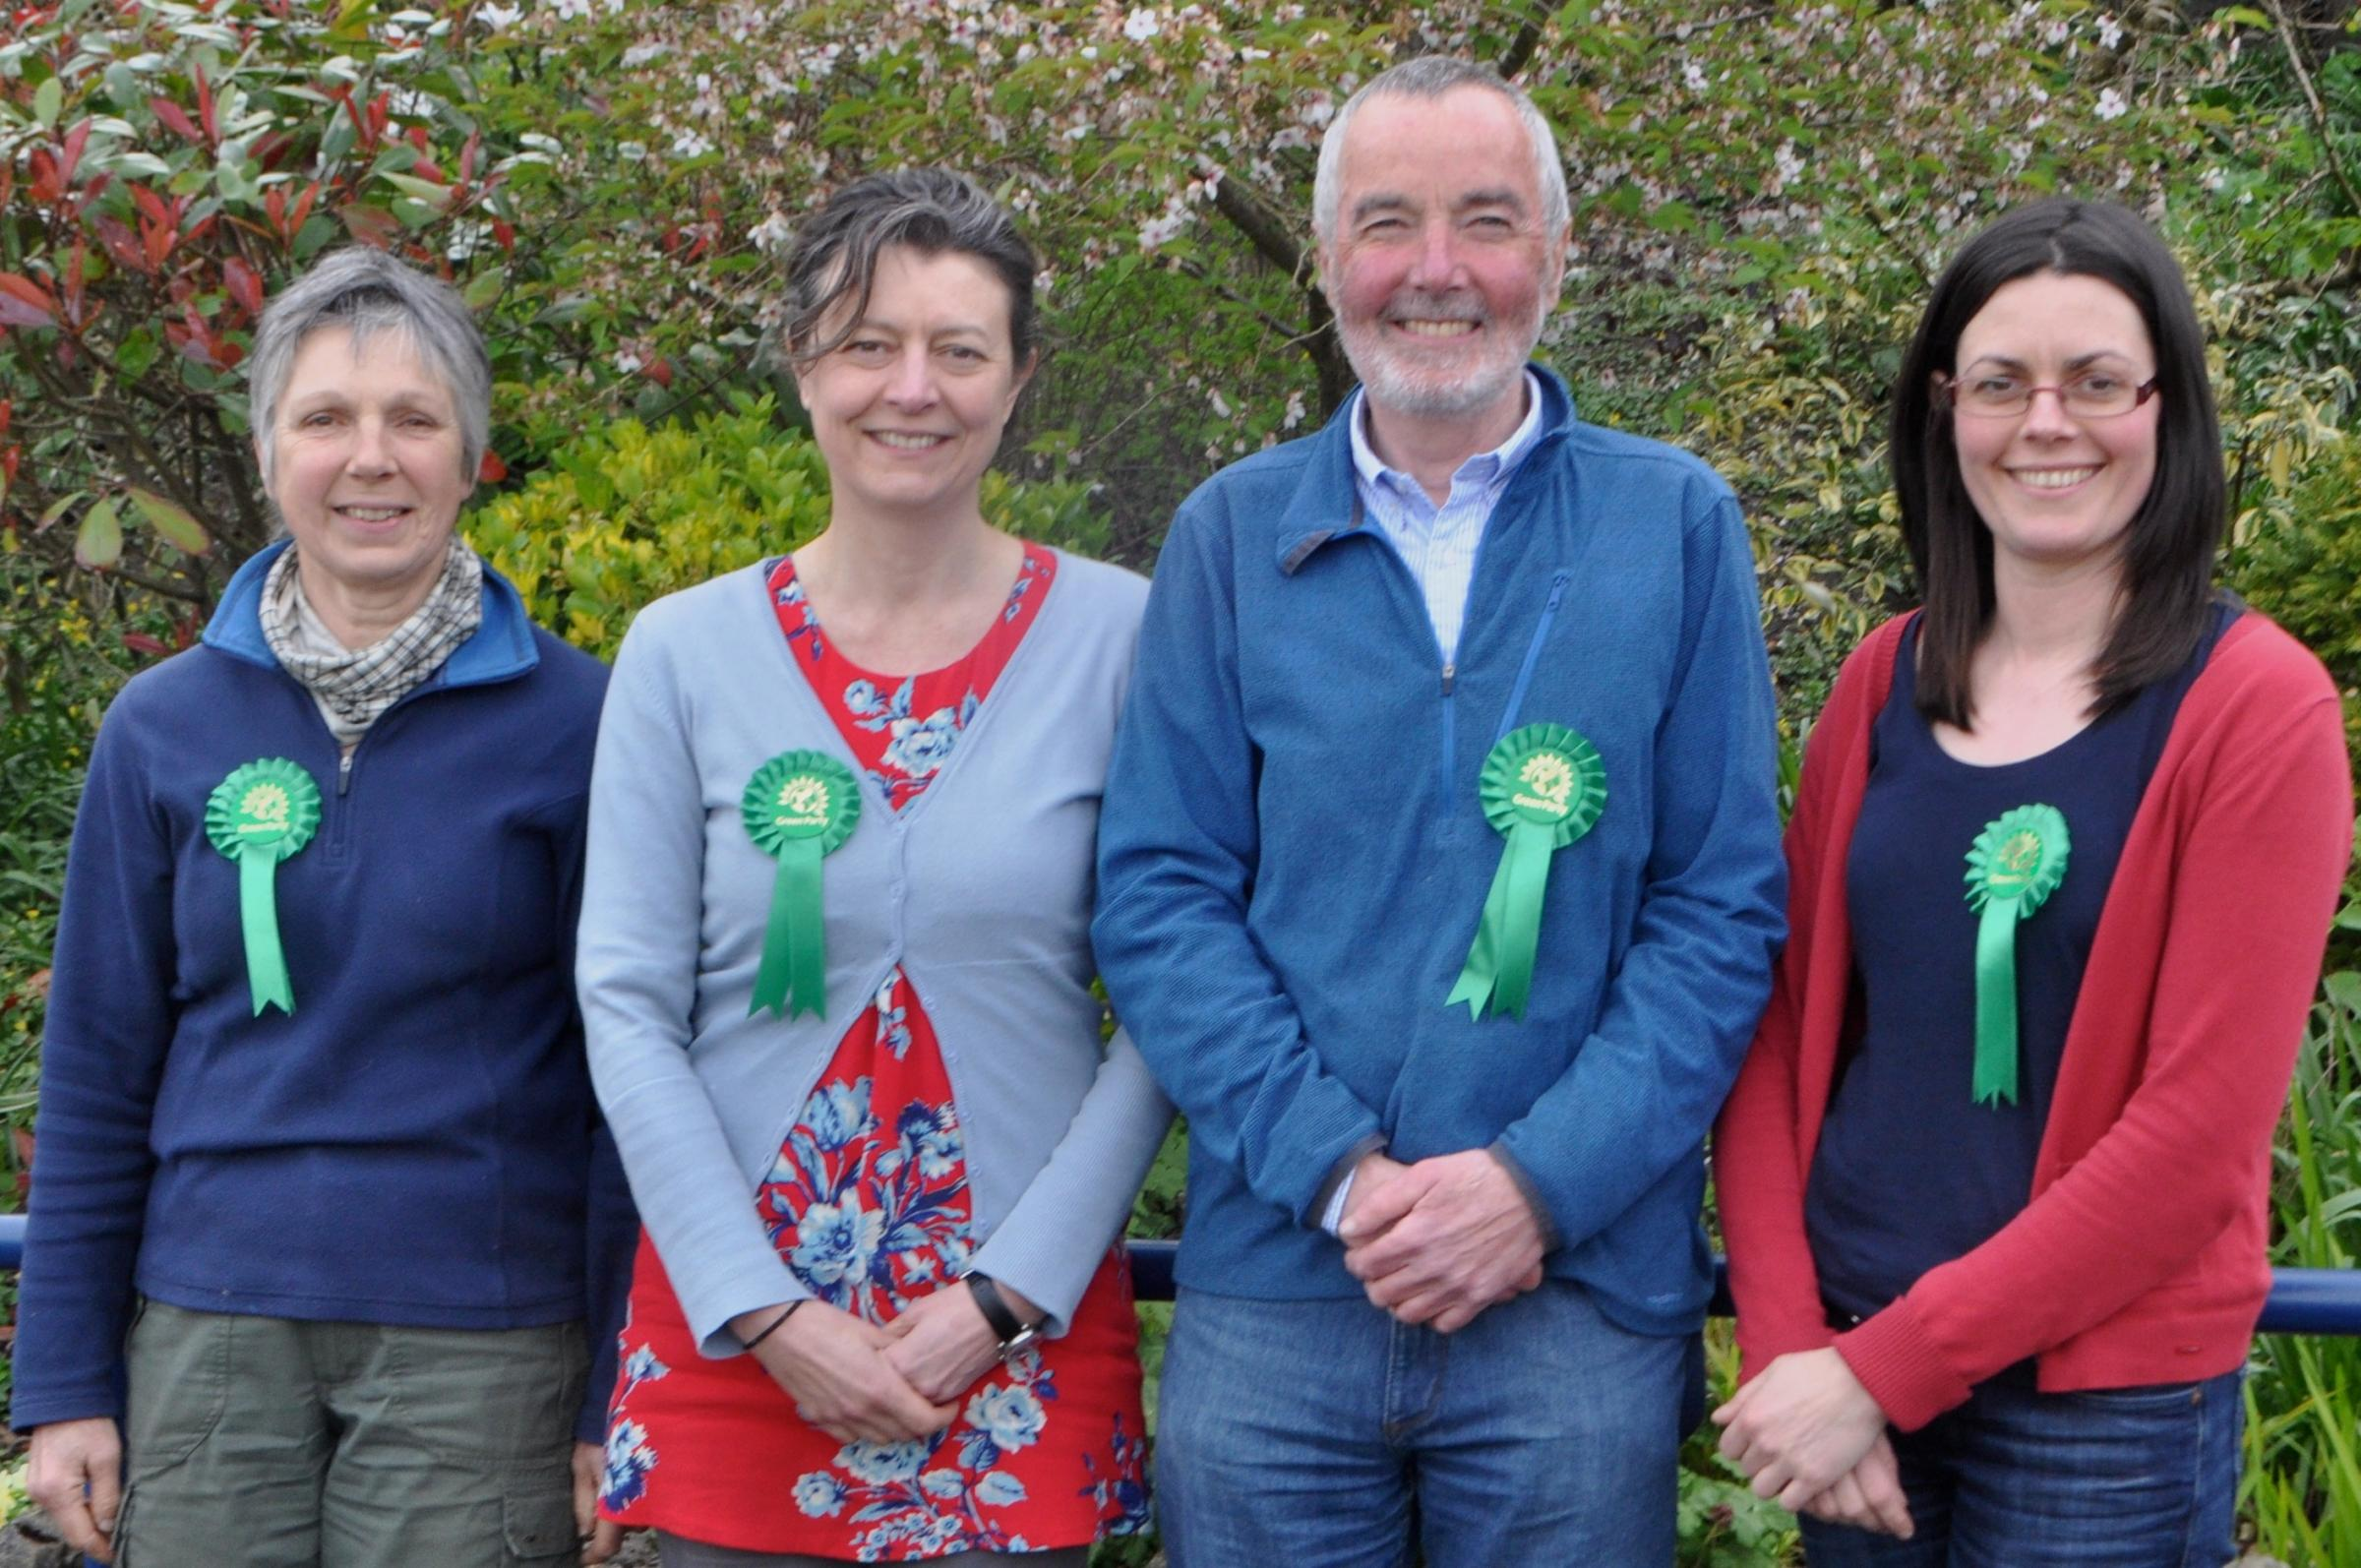 Four of the 17 Green Party candidates. From left to right: Liz Ashburn, standing for Castle Ward; Karen Mitchell, standing for Mintsfeet; Chris Rowley, standing for Kirkland; and Gwen Harrison, standing for Kendal Fell